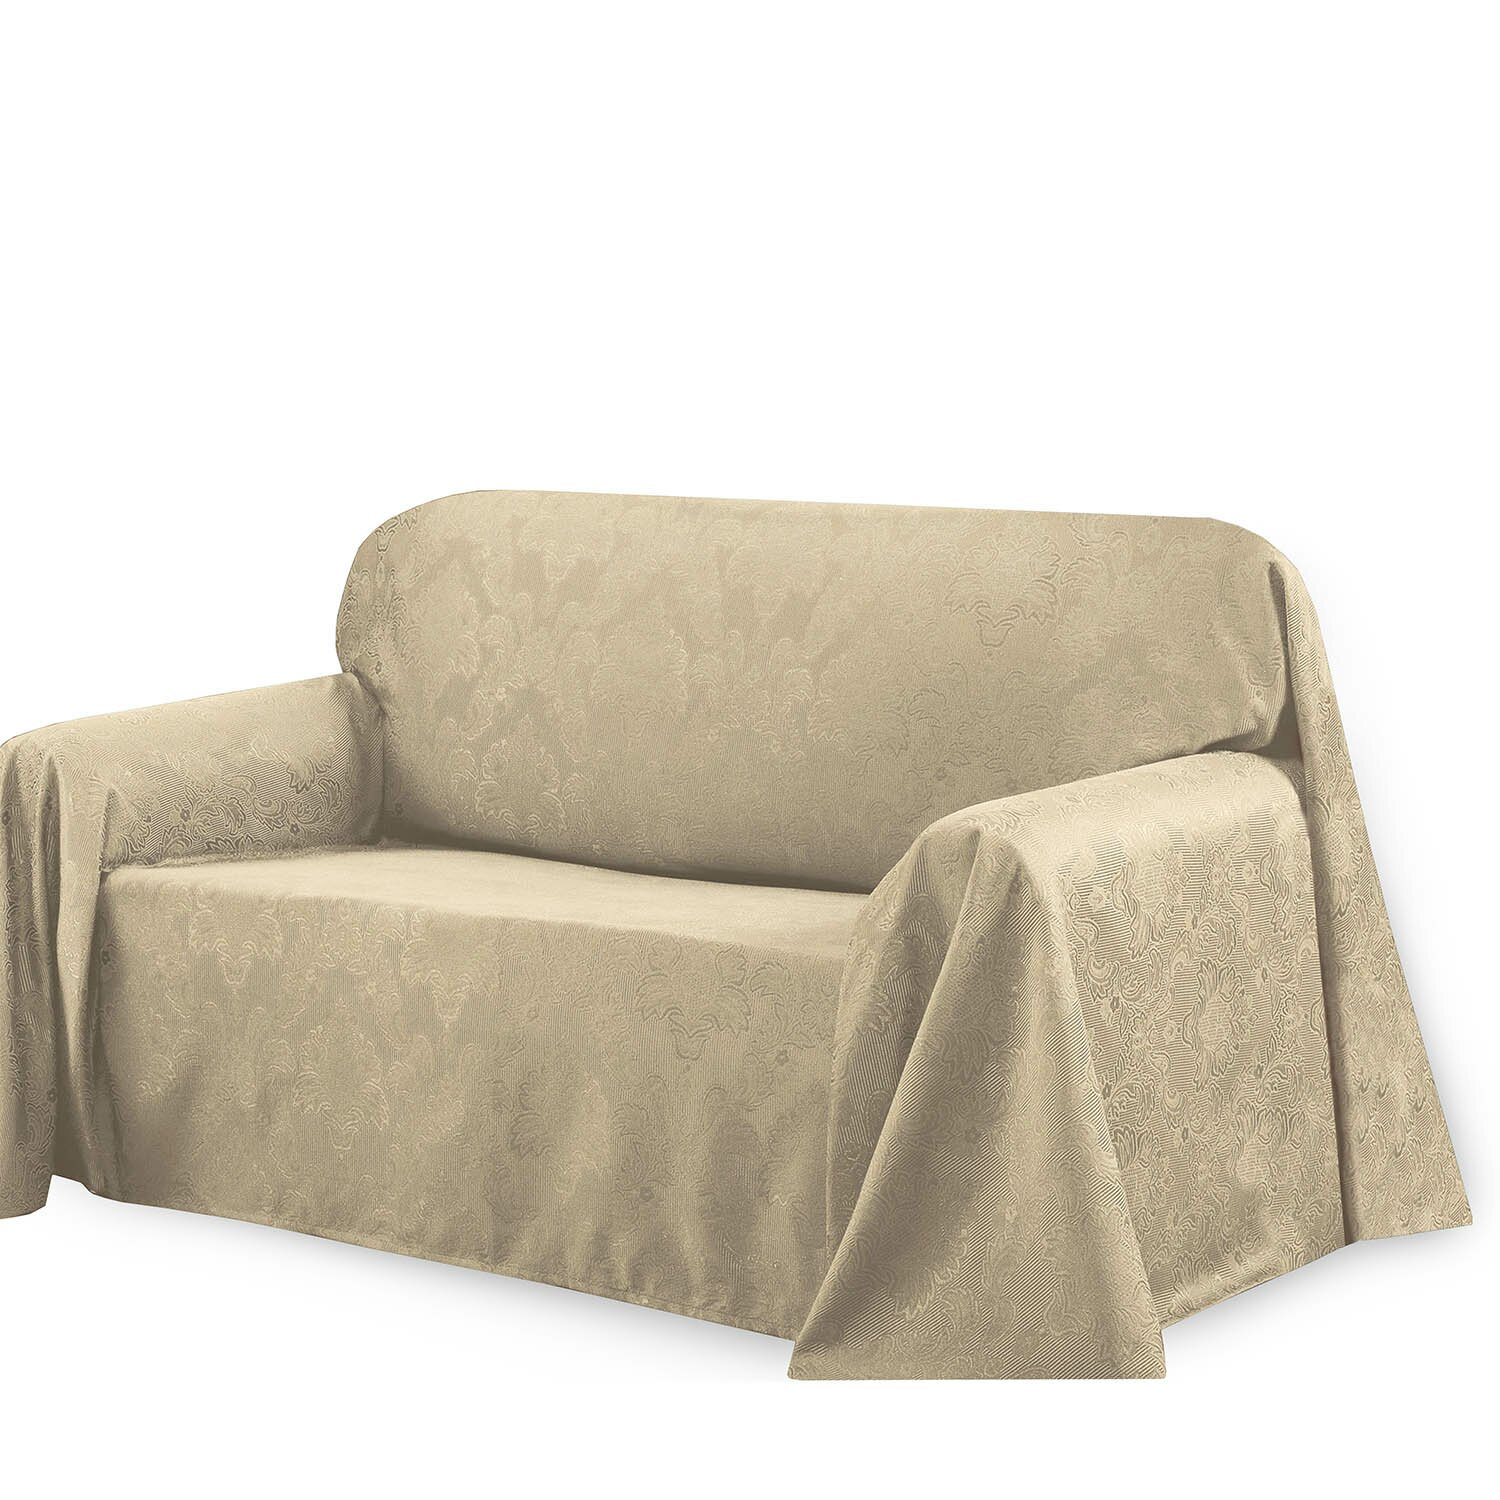 Bella Luna Medallion Loveseat Slip Cover Reviews Wayfair